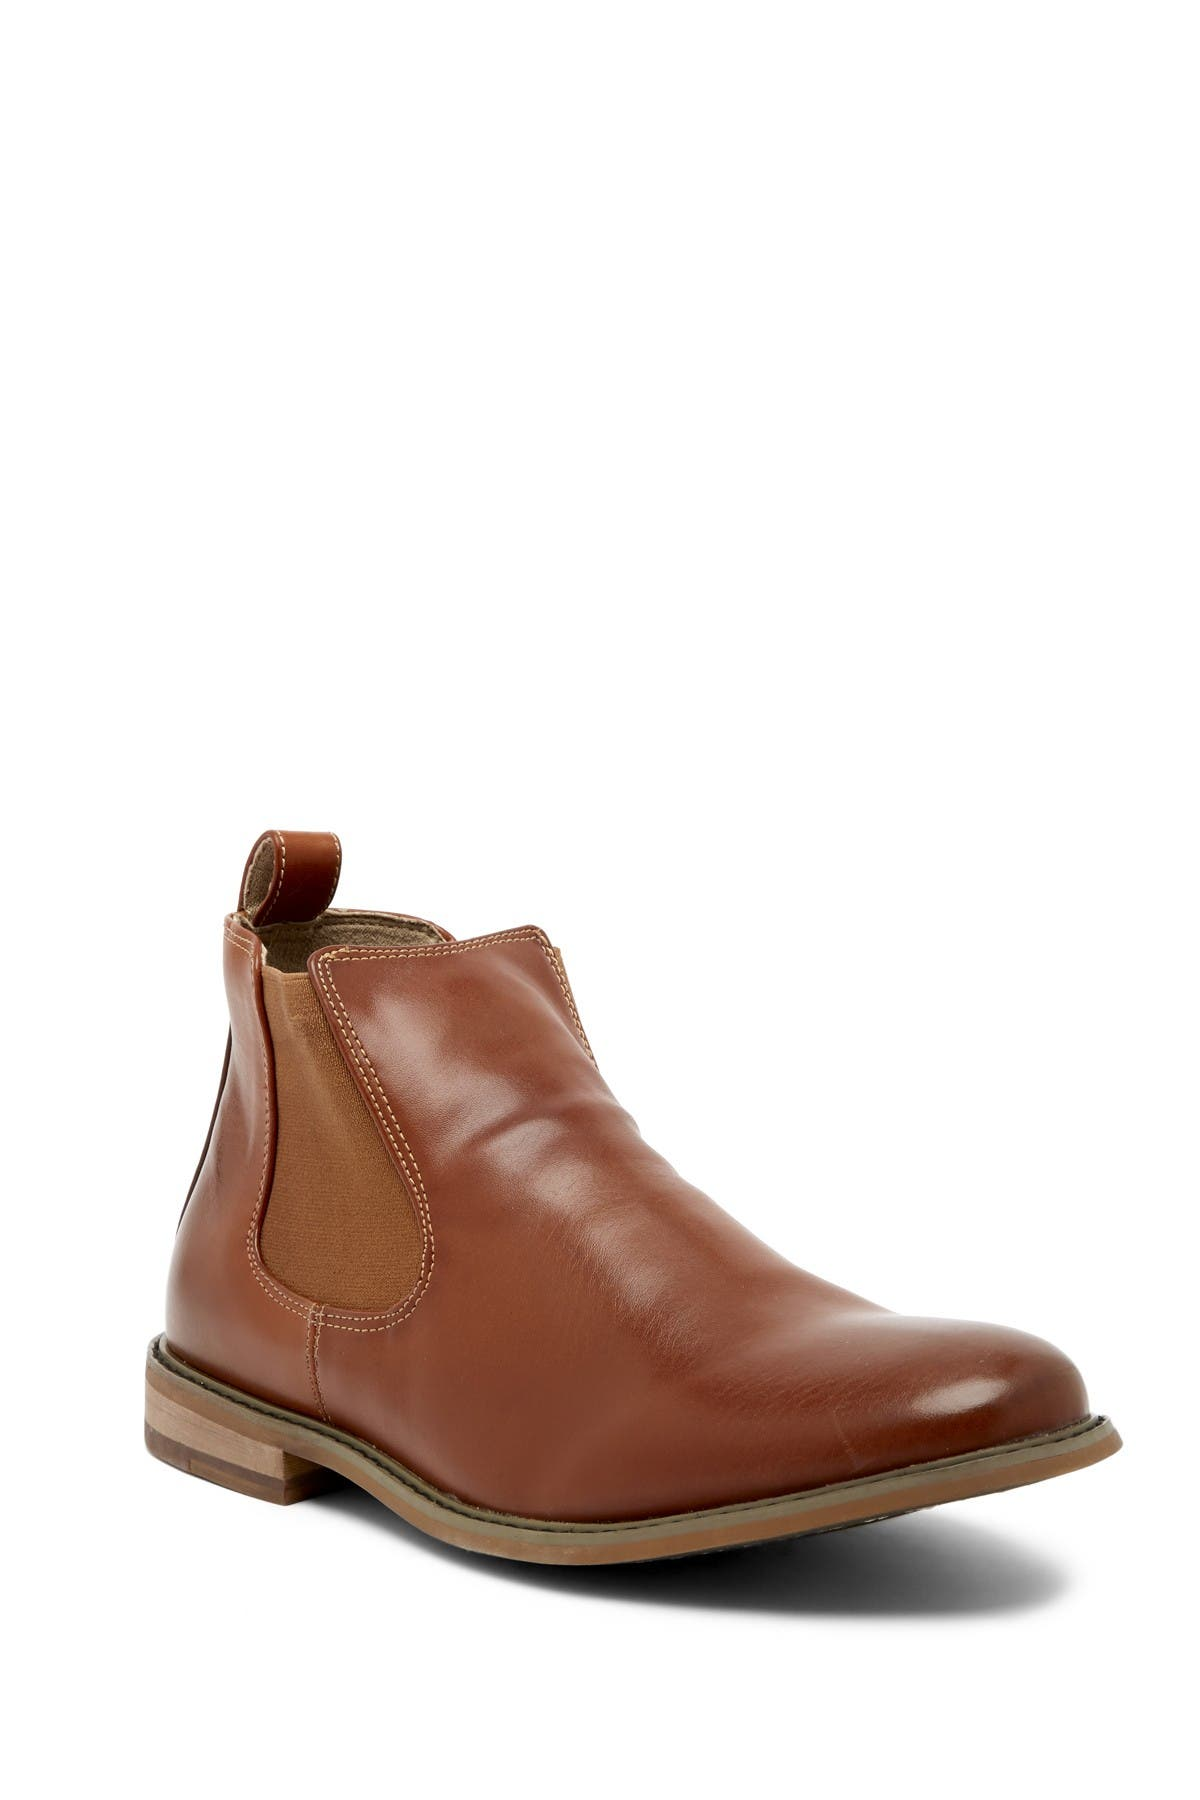 Image of Deer Stags Tribecca Chelsea Boot